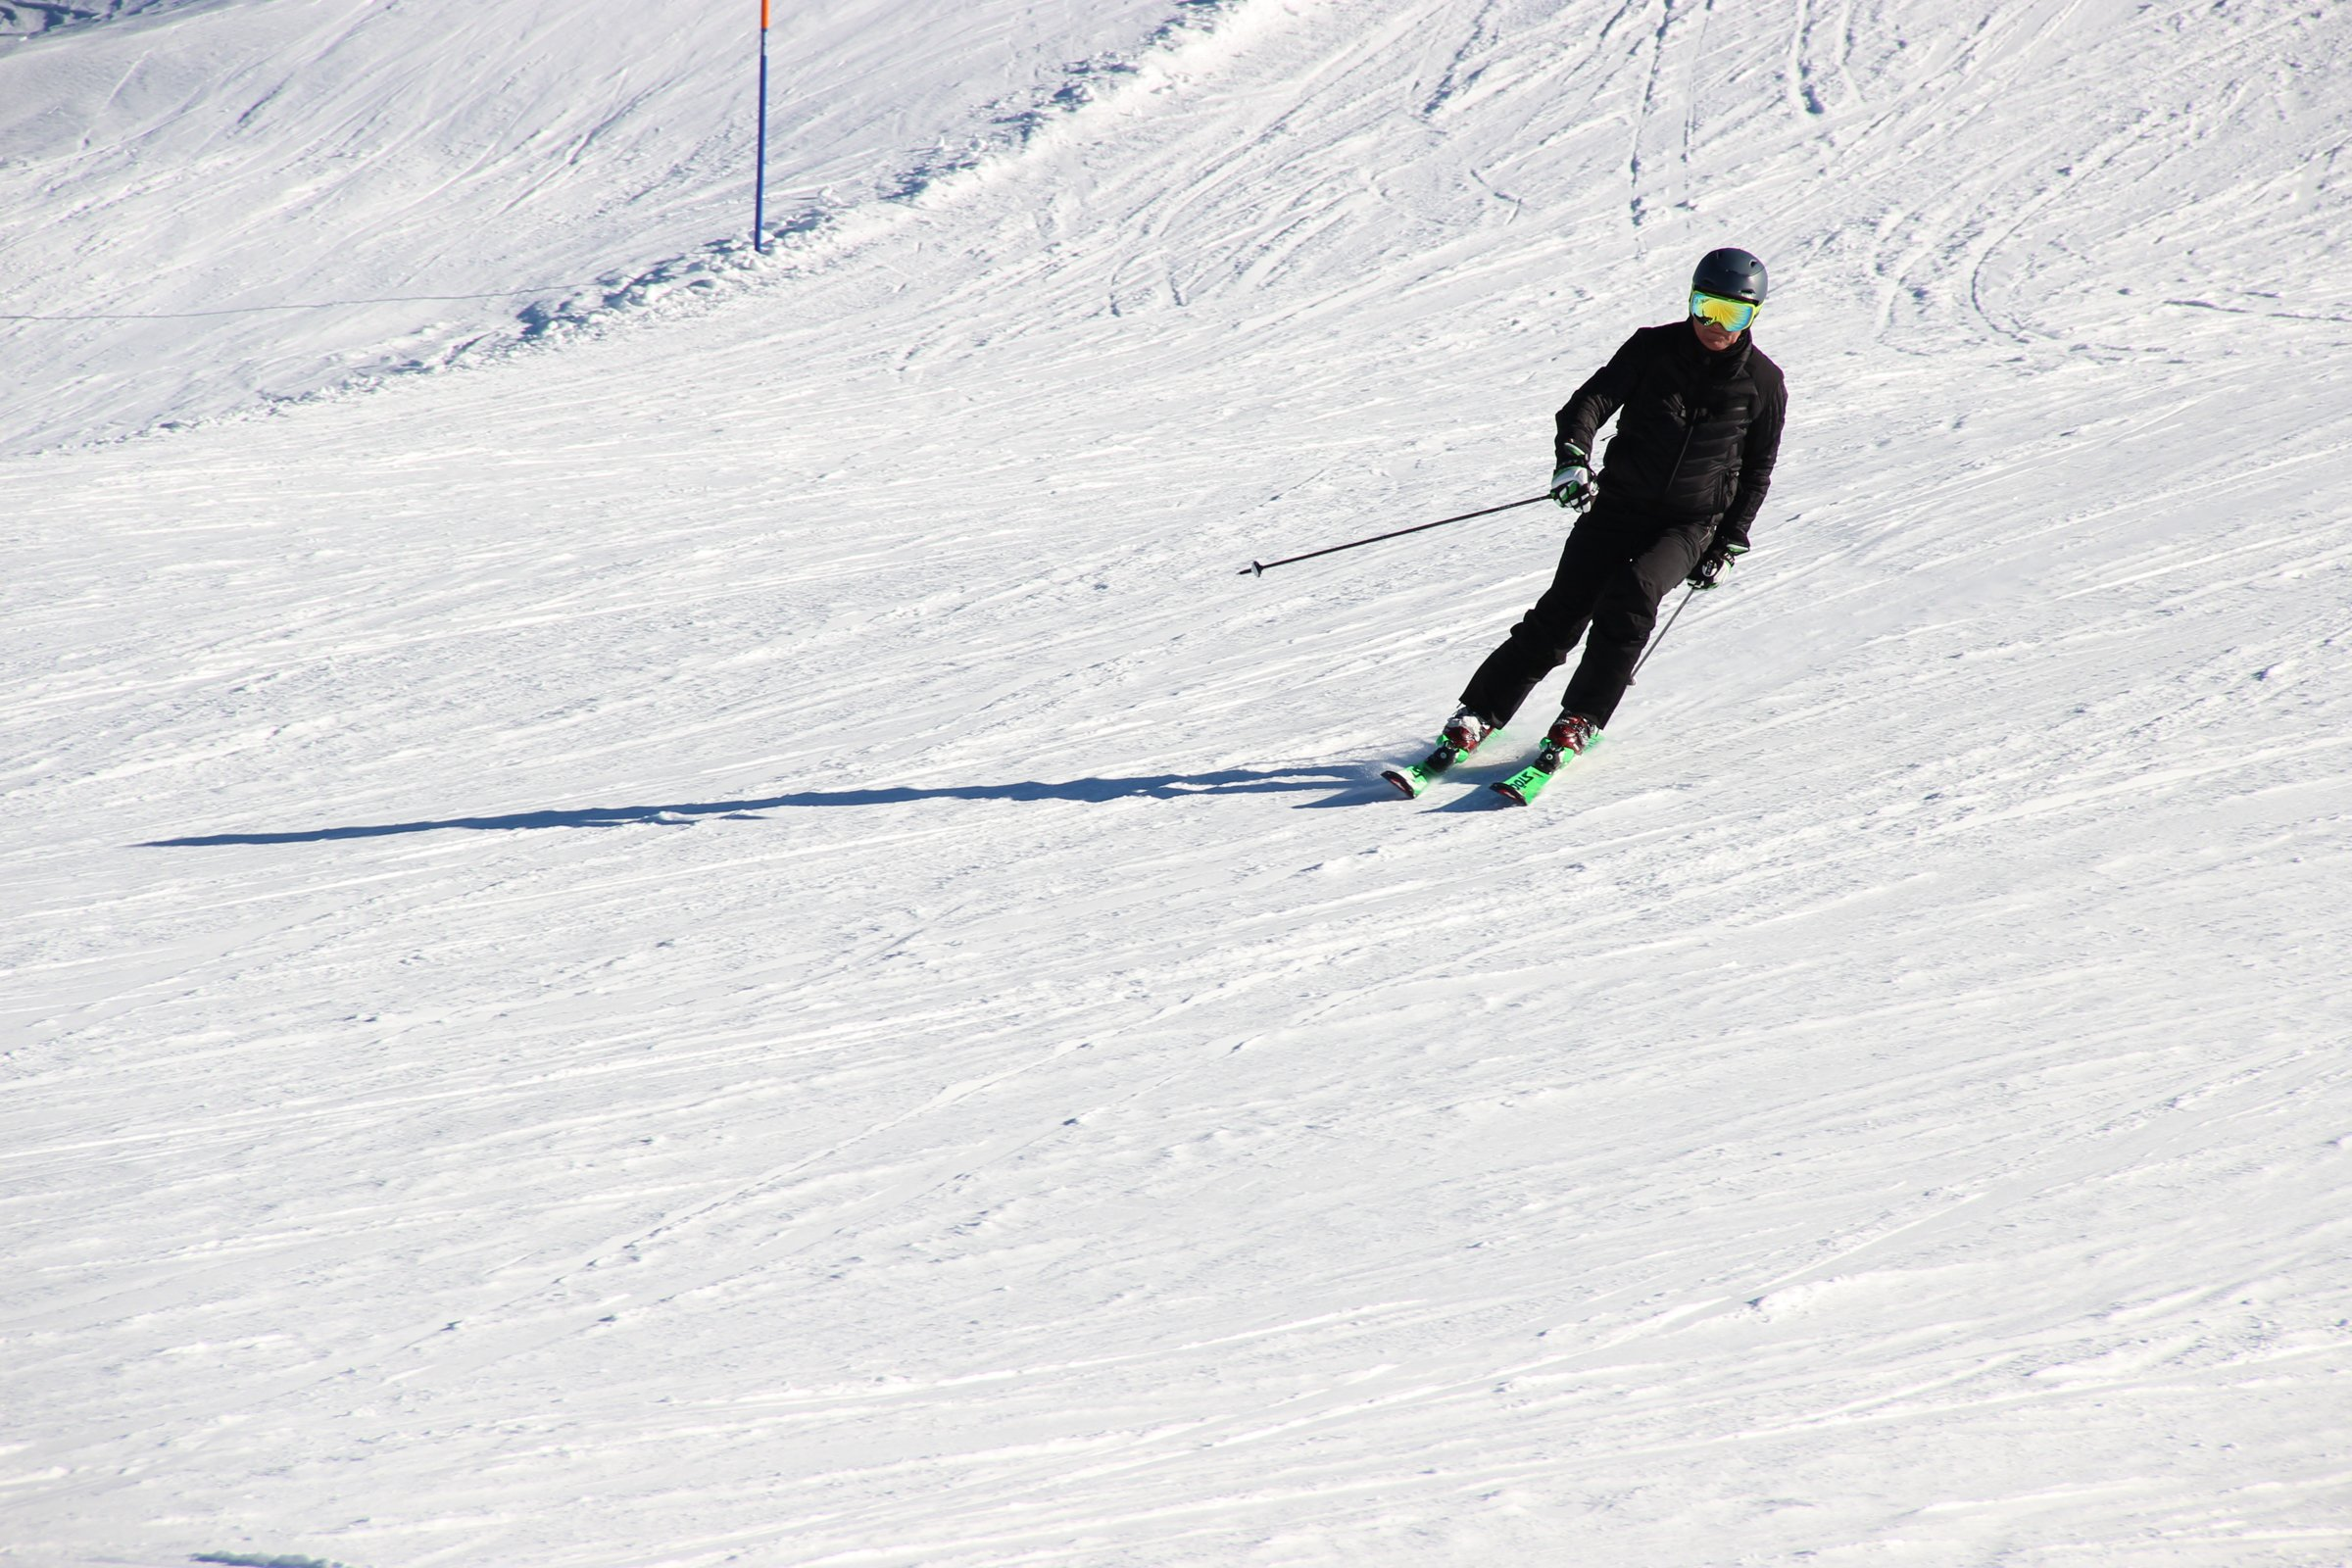 Man Skiing Down Snow Slope